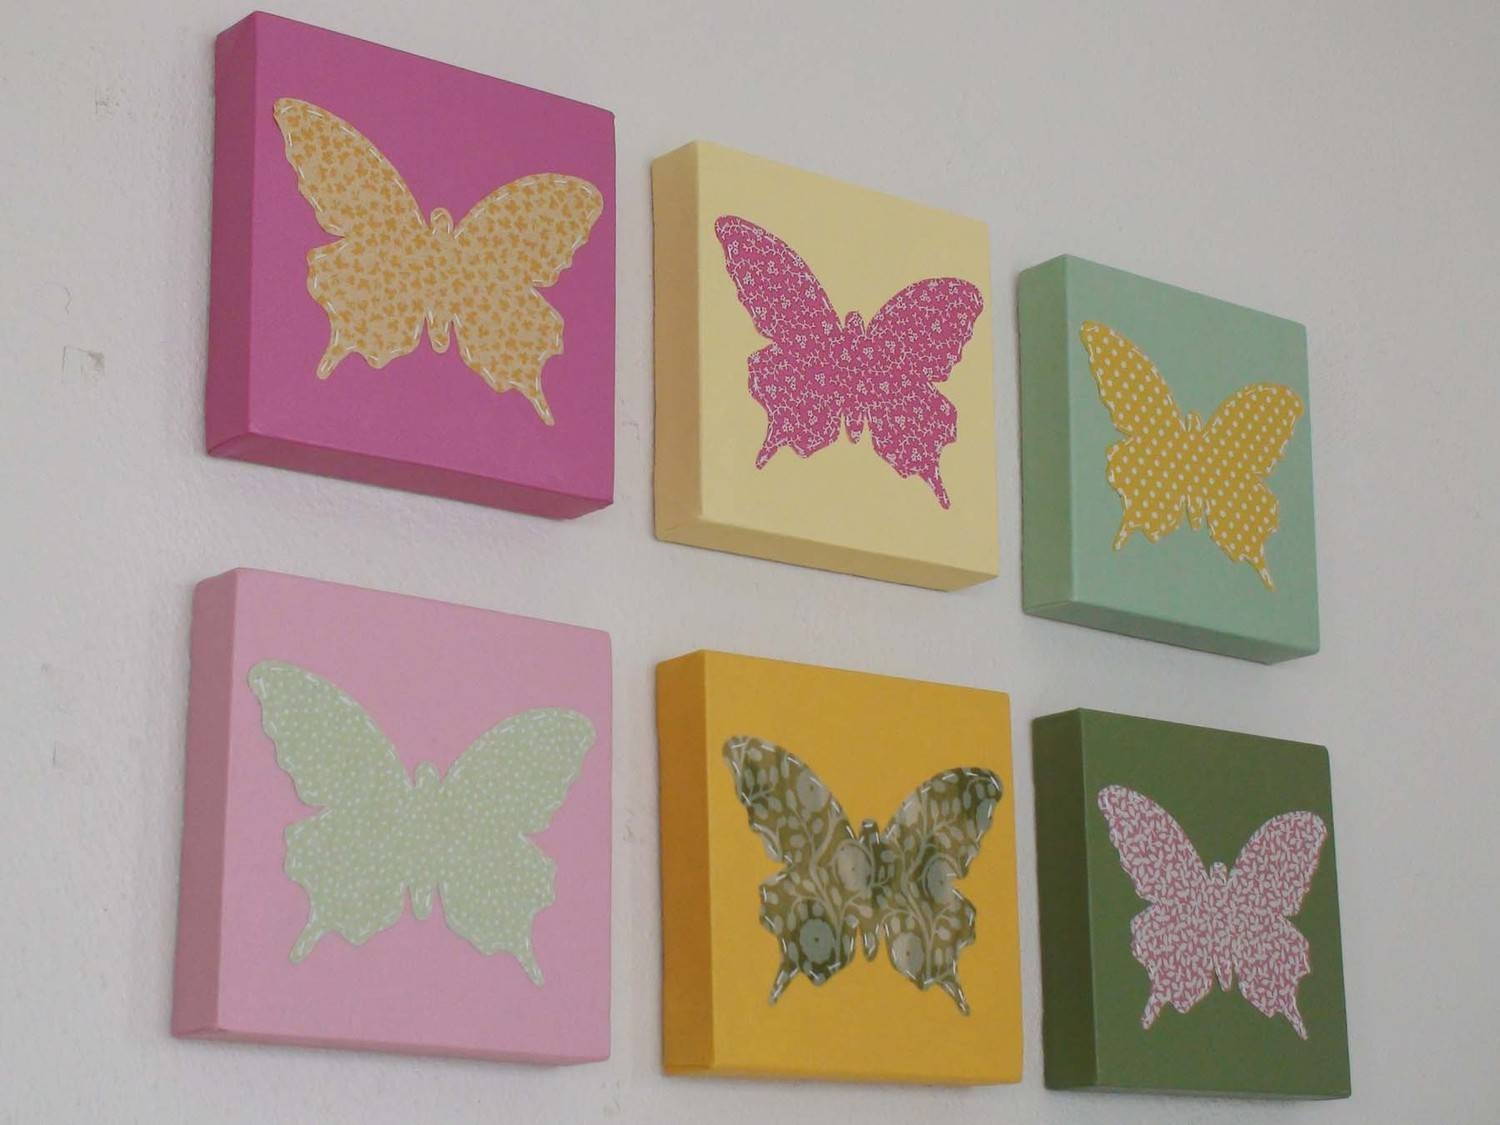 Eight Butterfly Canvas Wall Decorations | Decor Woo With Regard To Most Popular Butterfly Canvas Wall Art (View 13 of 20)